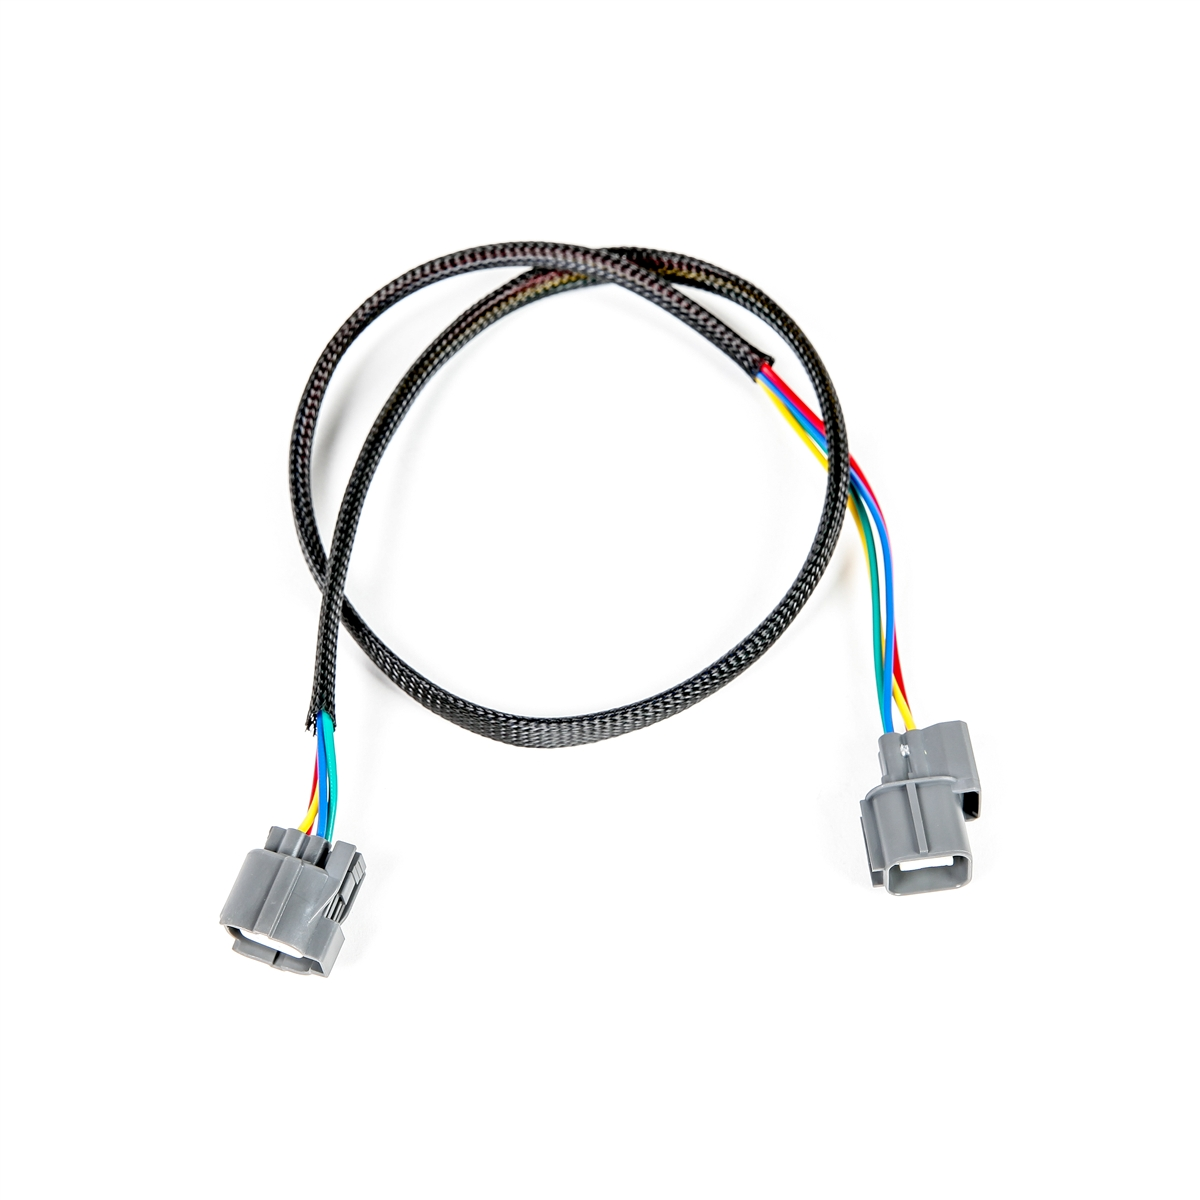 rywire 4 wire oxygen sensor o2 extension oxygen sensor wire harness extension [ 1200 x 1200 Pixel ]